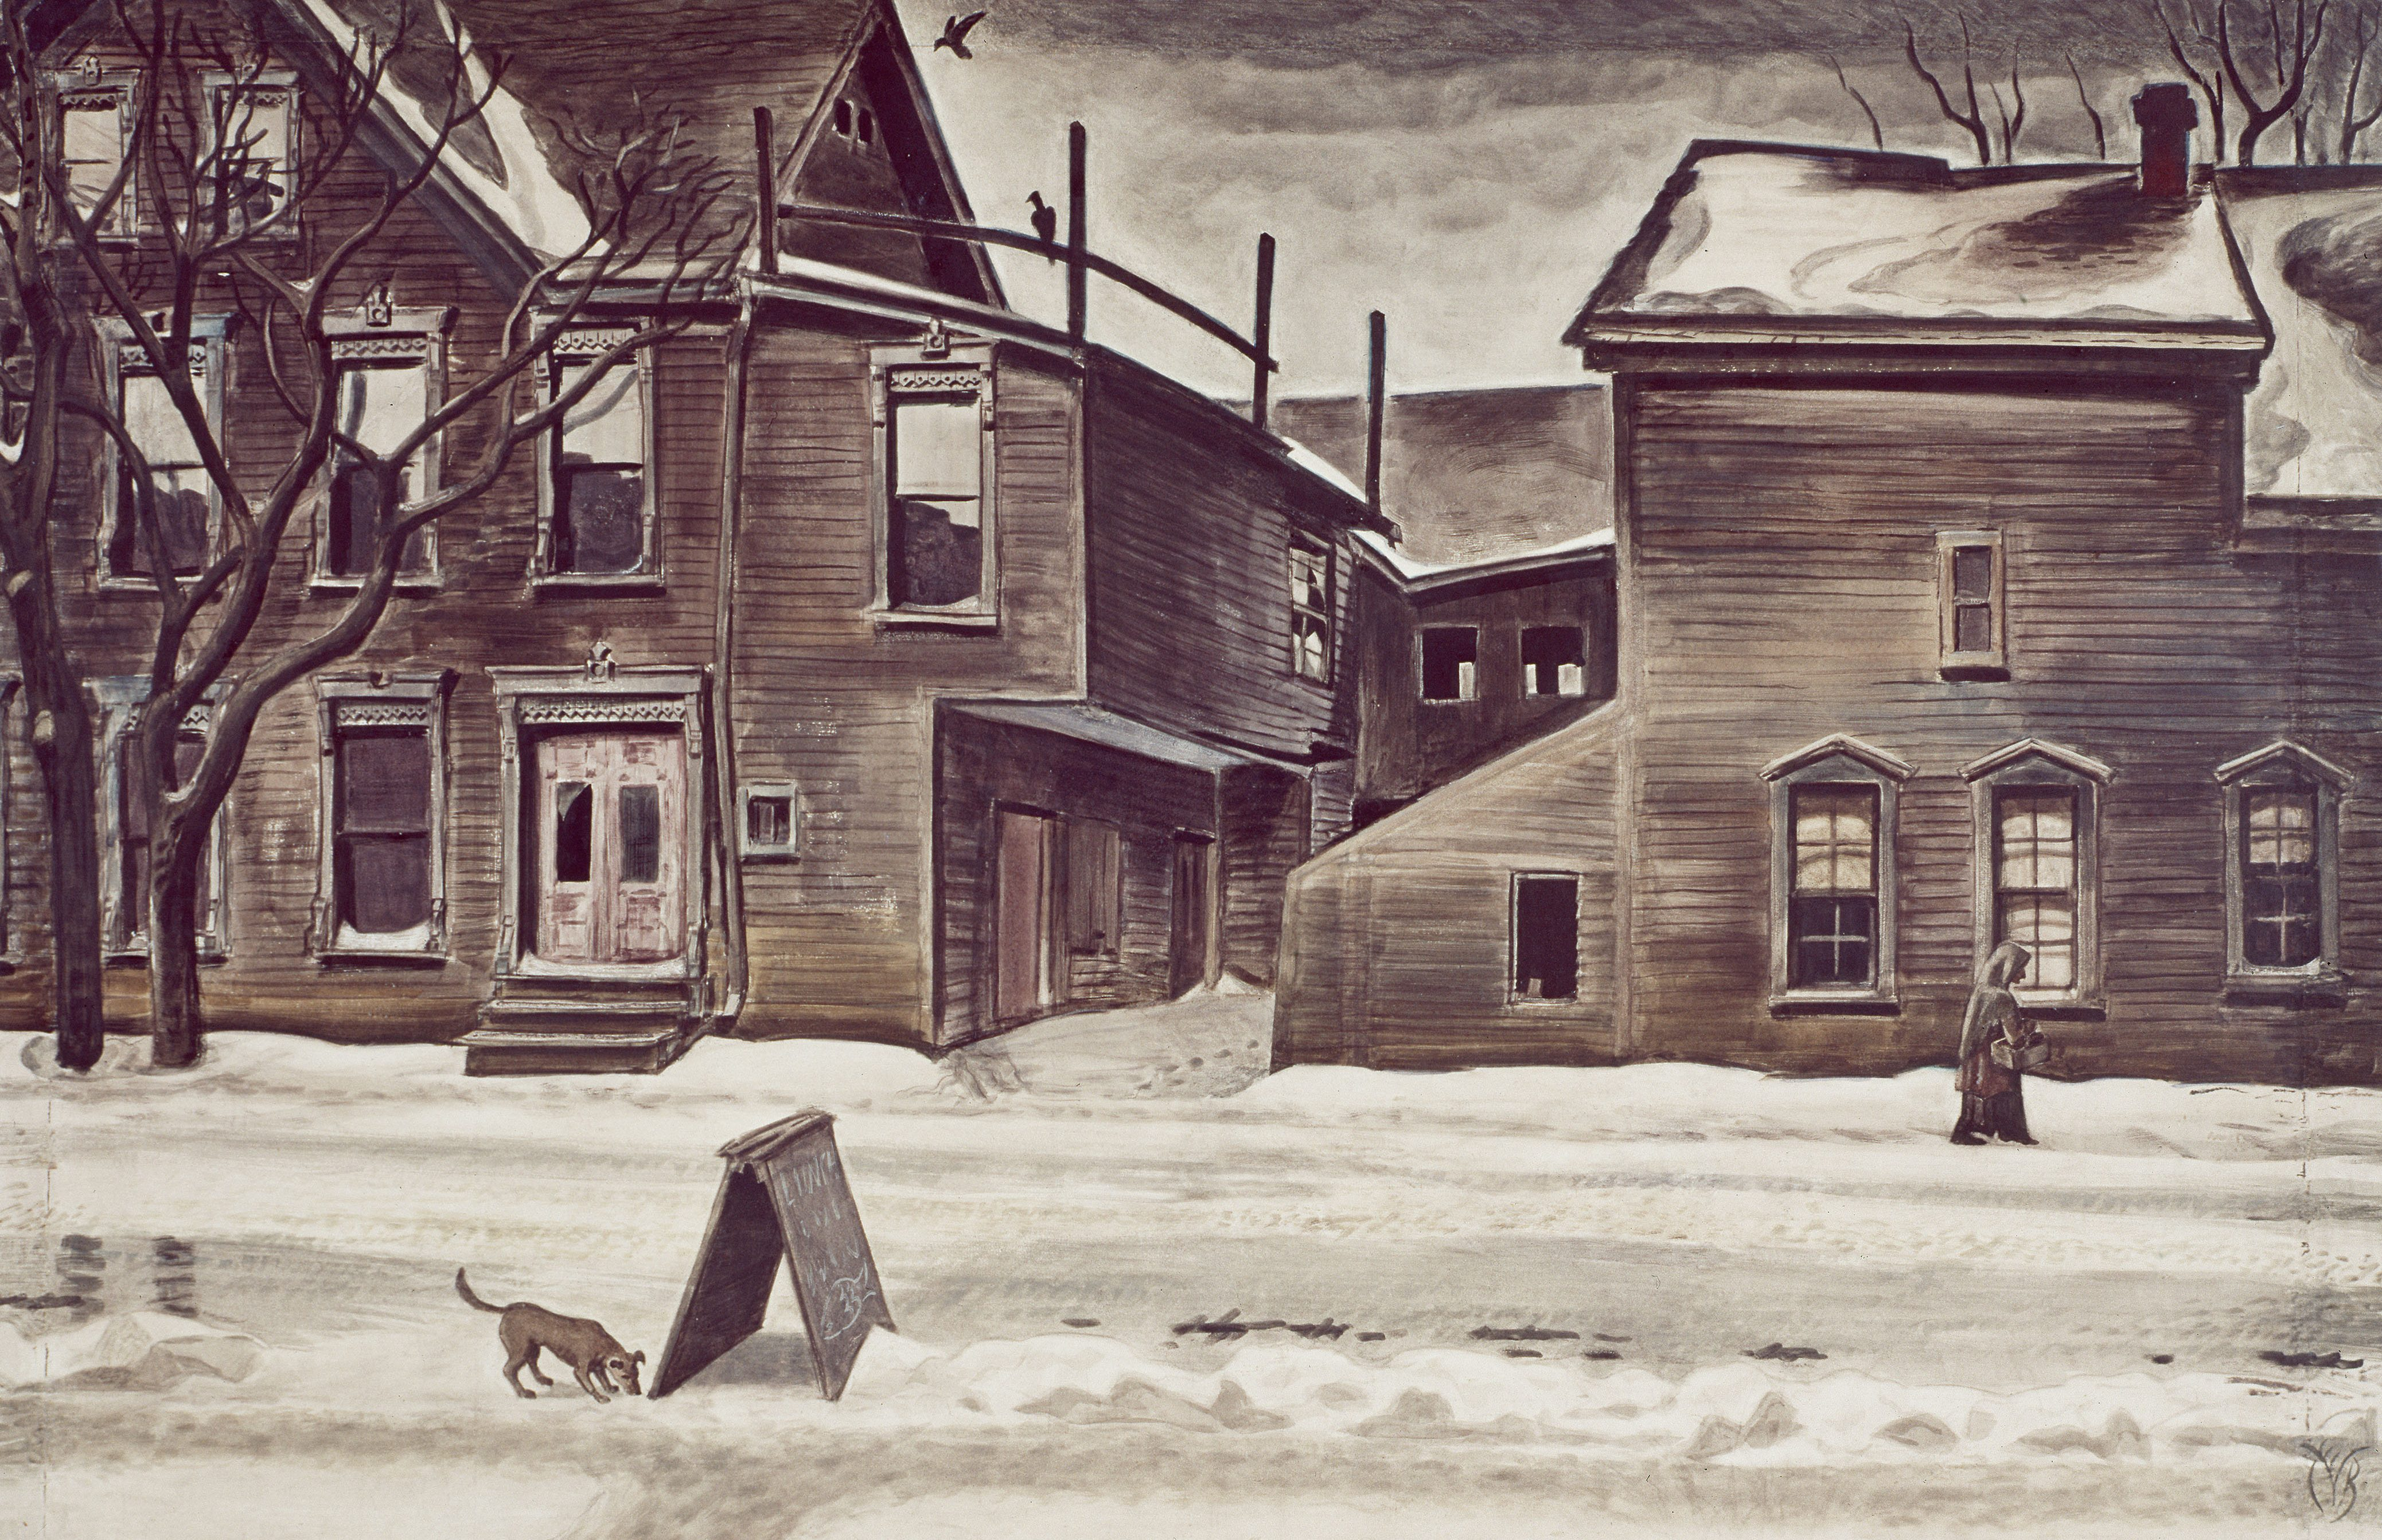 old-houses-in-winter-1929-1941-burchfield